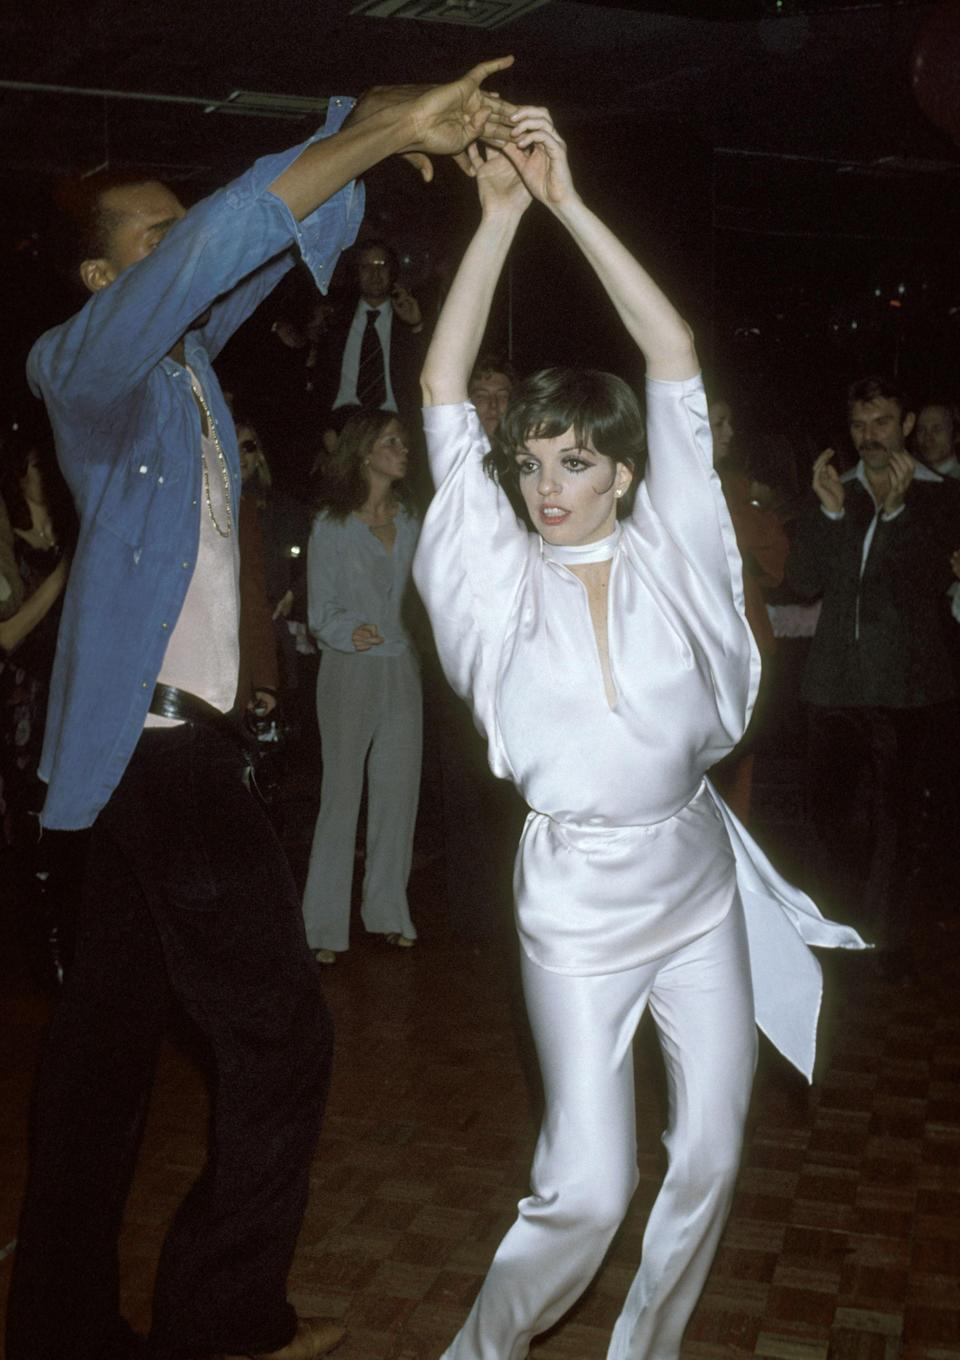 Sterling St Jacque and Minnelli dance at Lorna Luft's 25th birthday party, New York, 21 November 1977